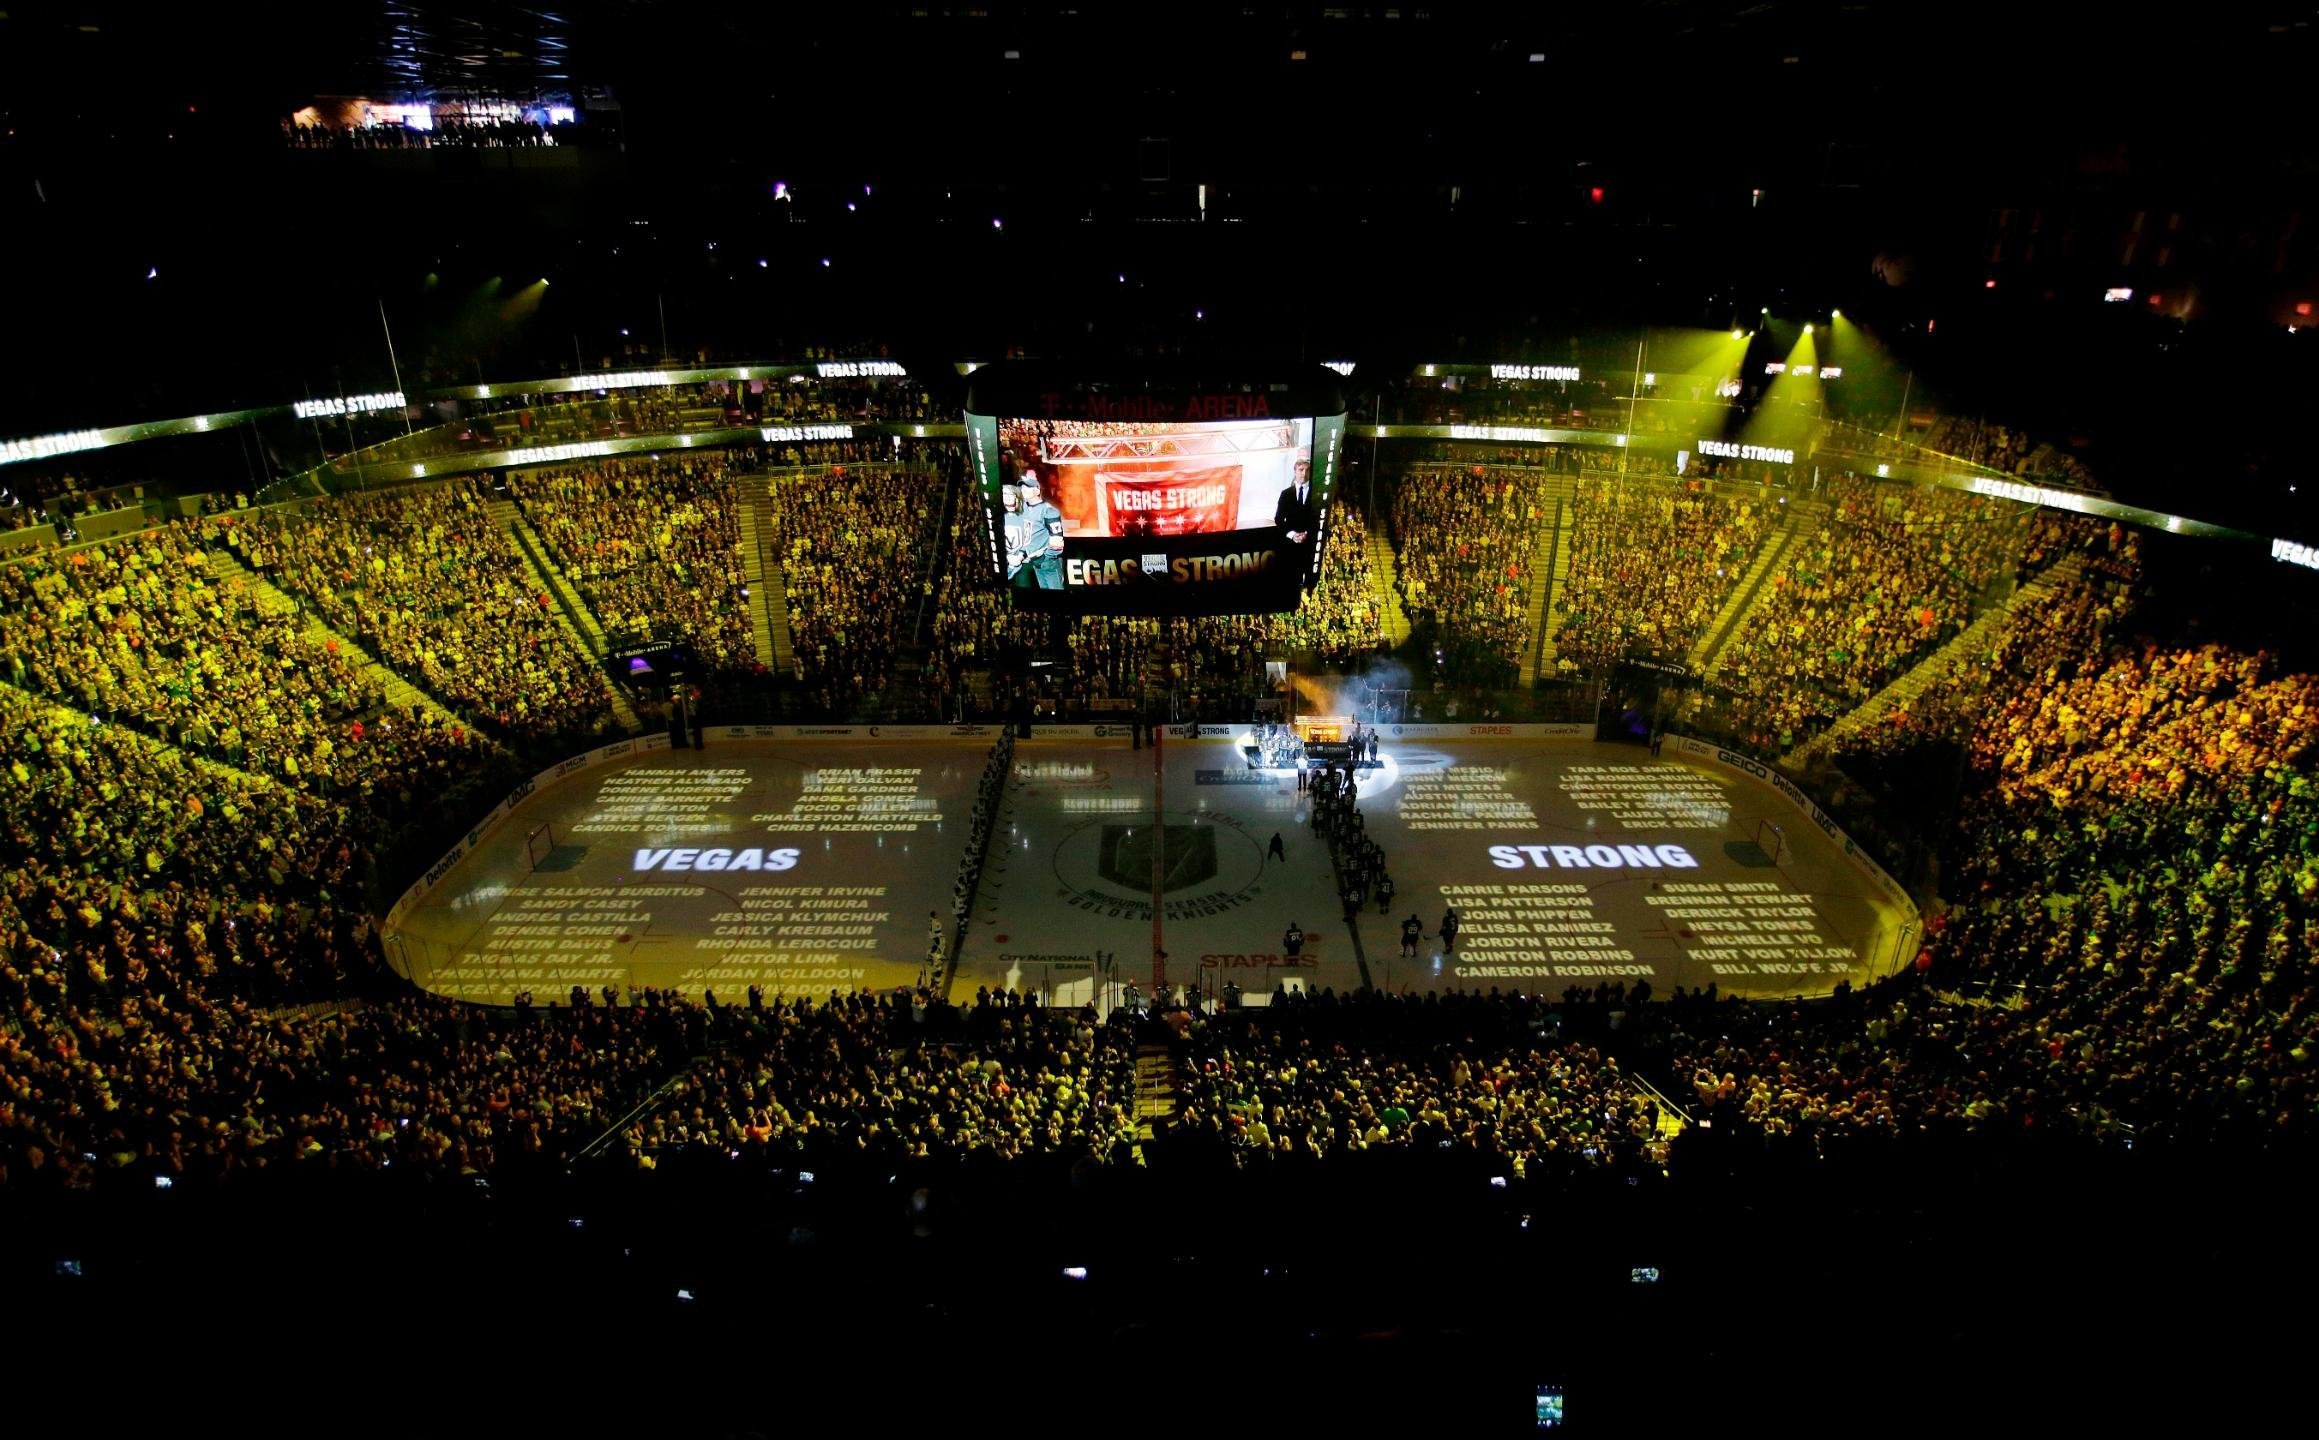 The names of people killed during the mass shooting in Las Vegas last year are projected on the ice during a ceremony before an NHL hockey game between the Vegas Golden Knights and the San Jose Sharks on Saturday in Las Vegas. (Credit: John Loocher/AP)